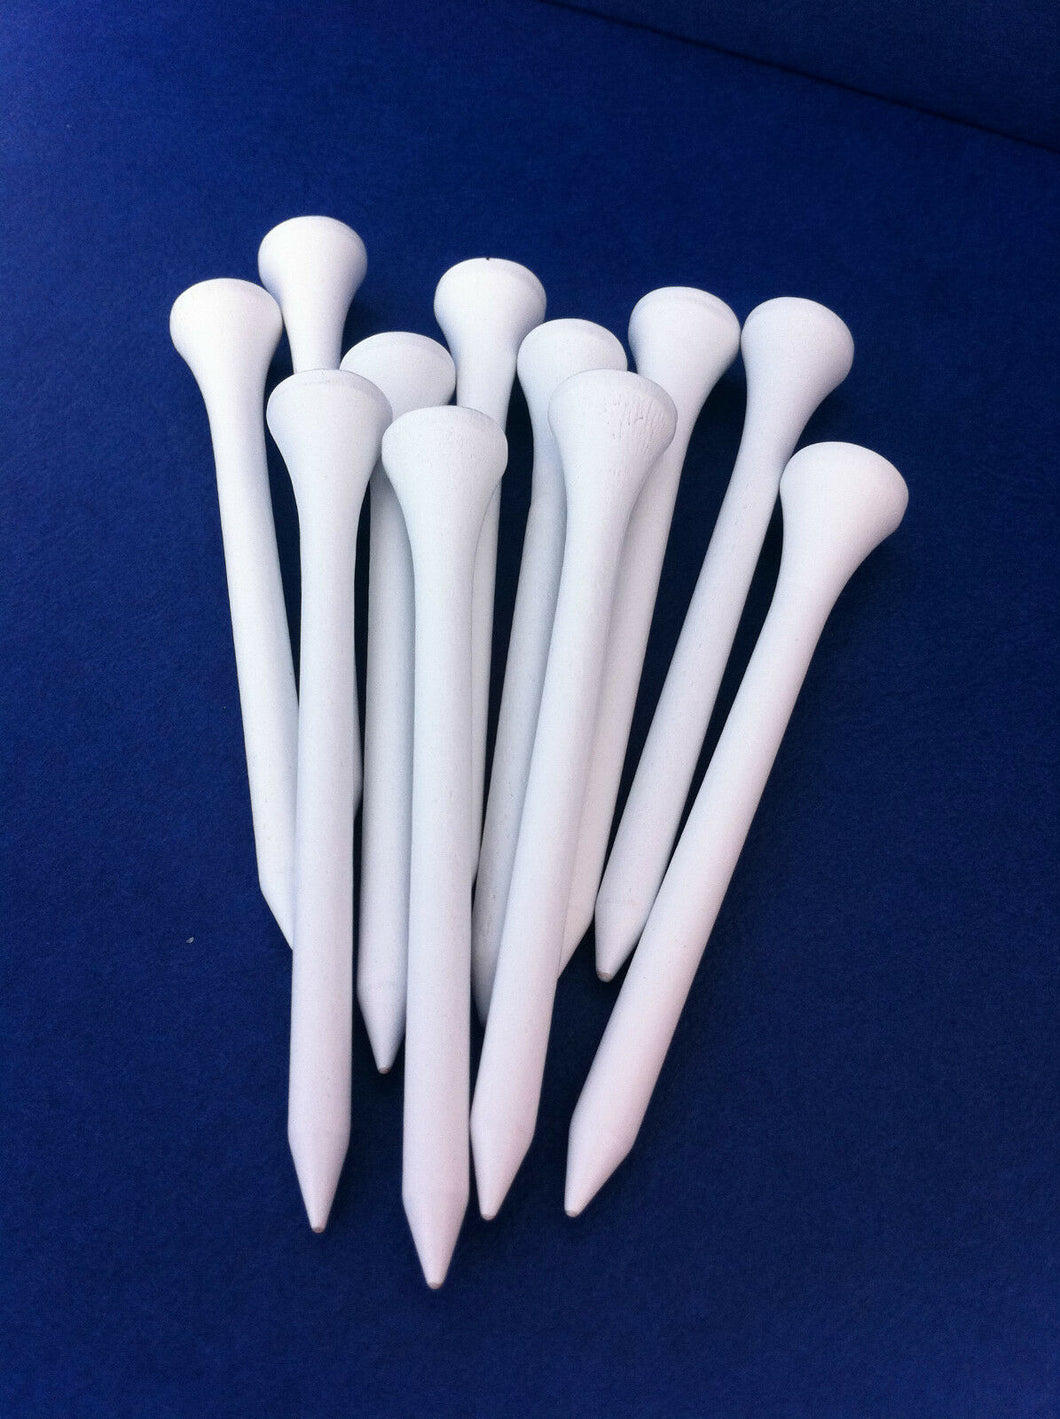 JL Golf White Wooden Golf Tees 54mm (2.1